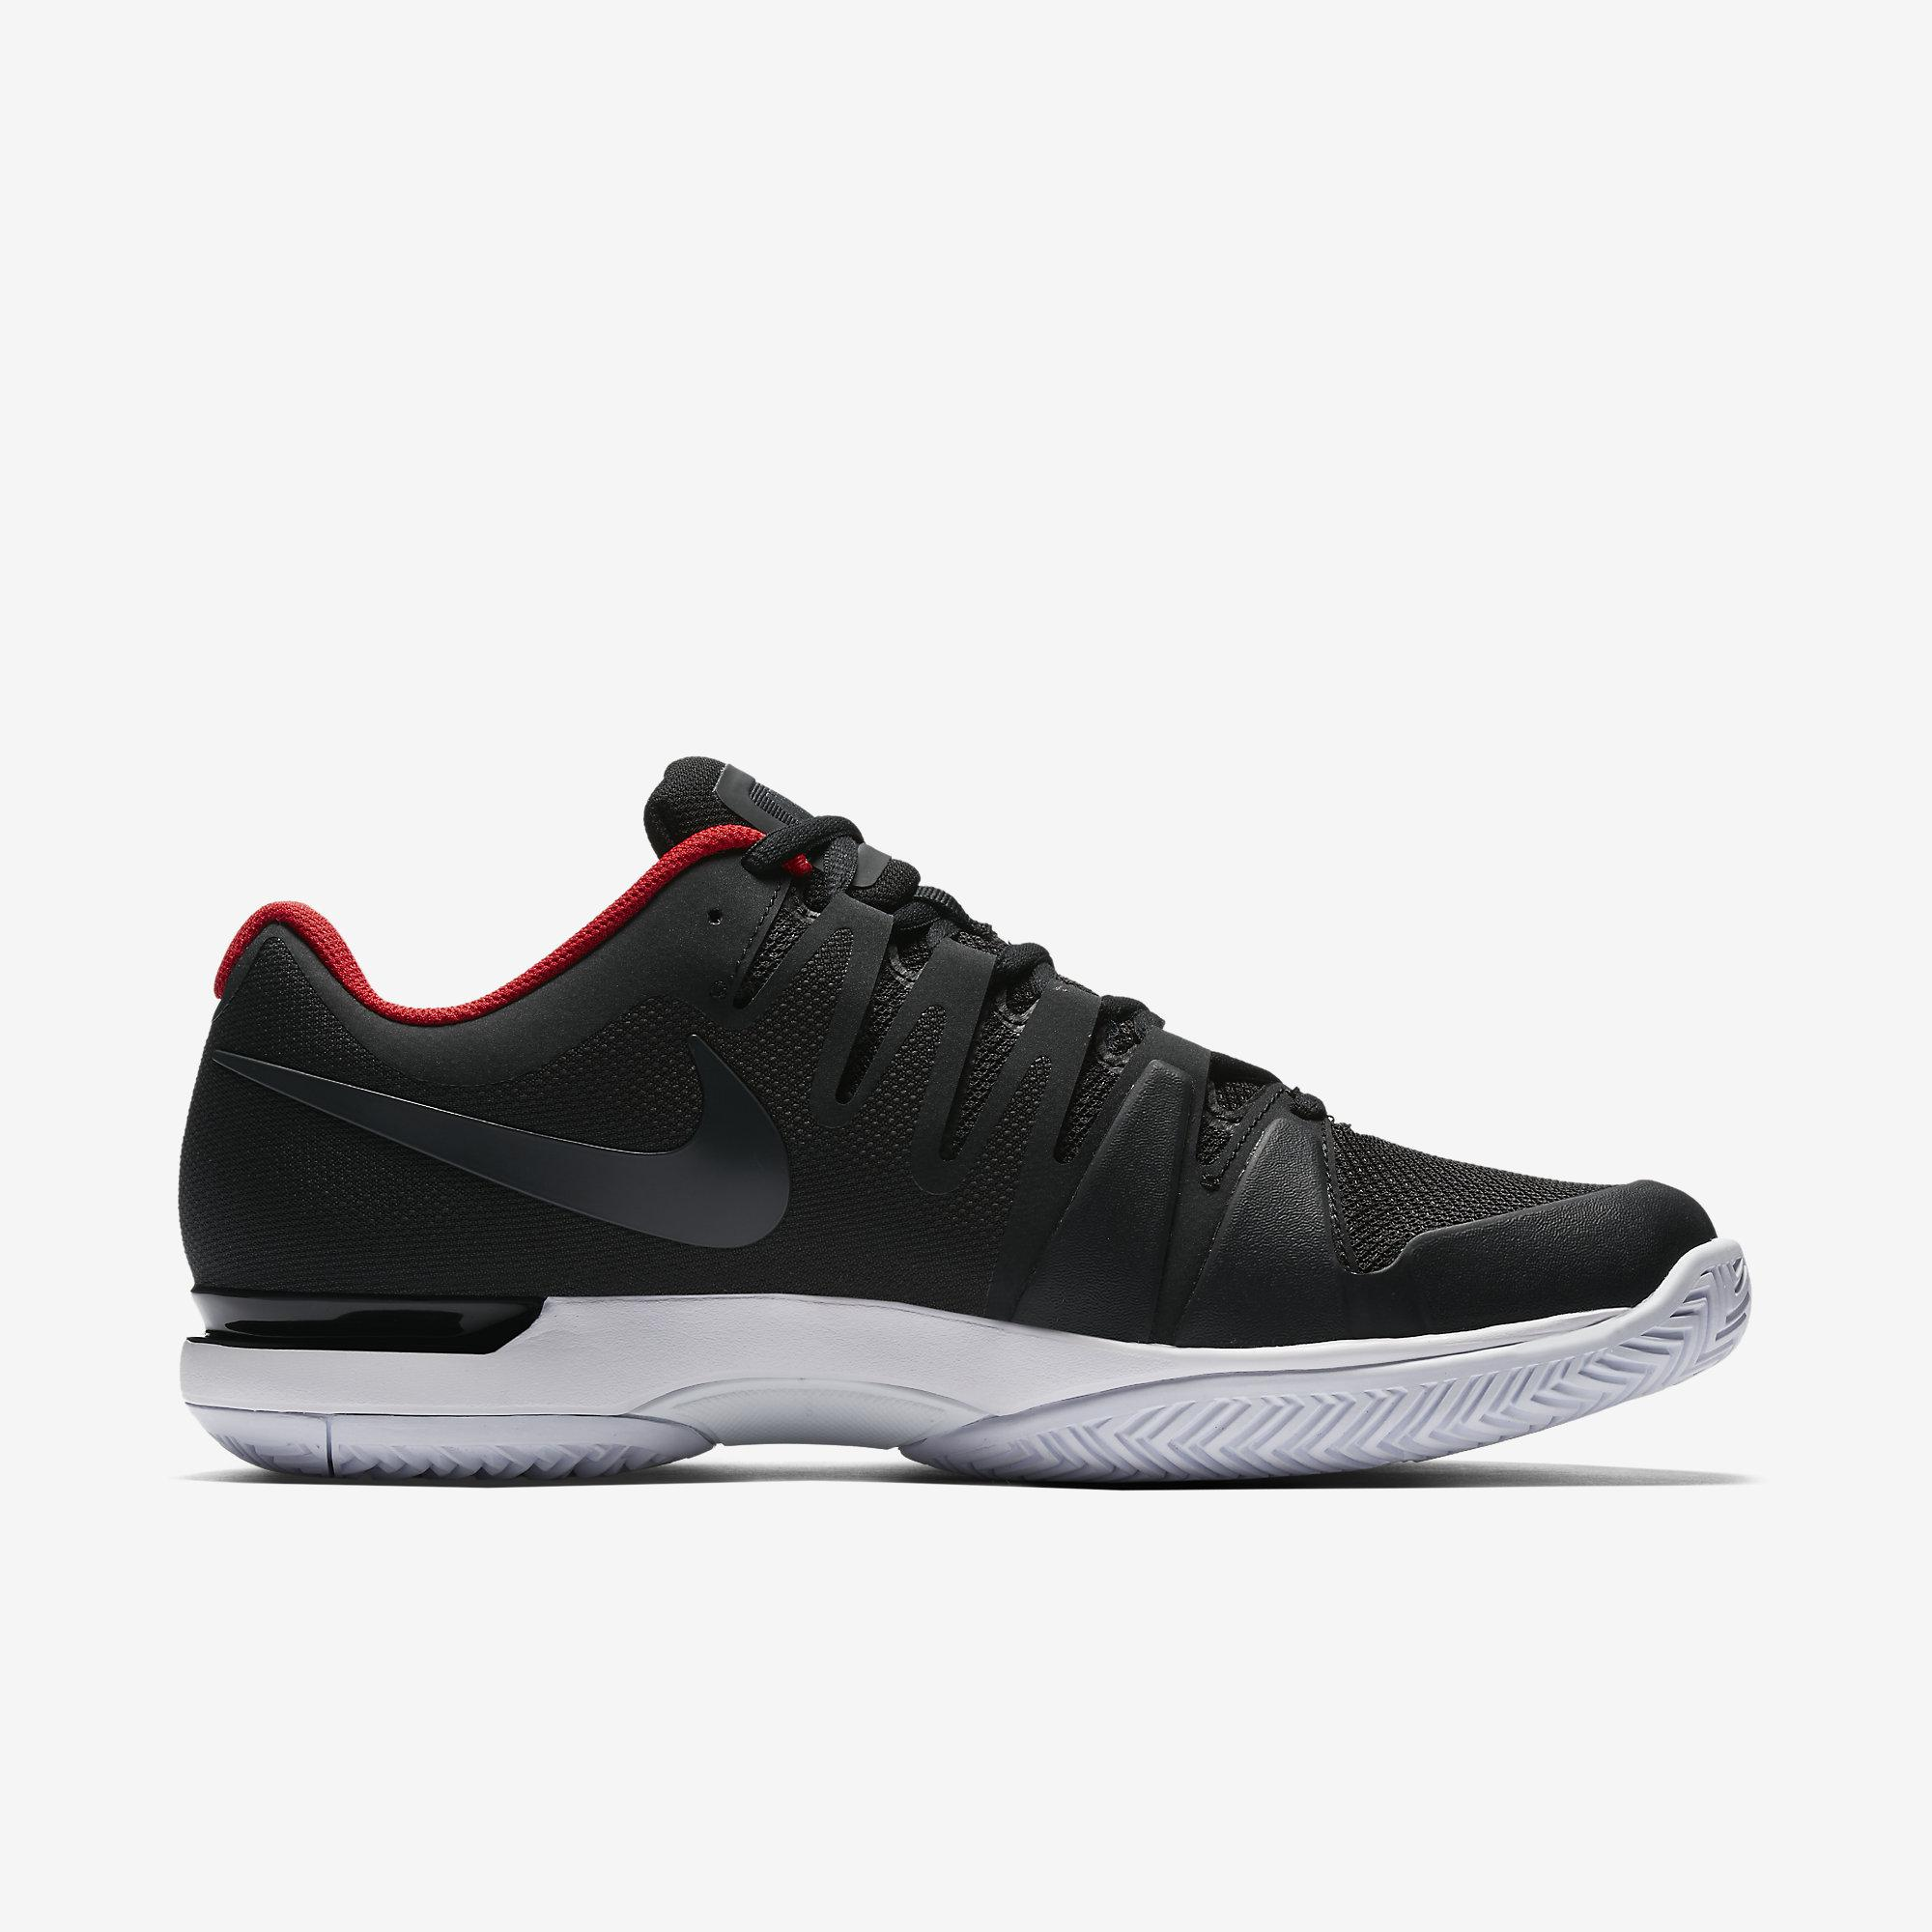 Nike Mens Zoom Vapor 9.5 Tour Tennis Shoes - Black/Red ...